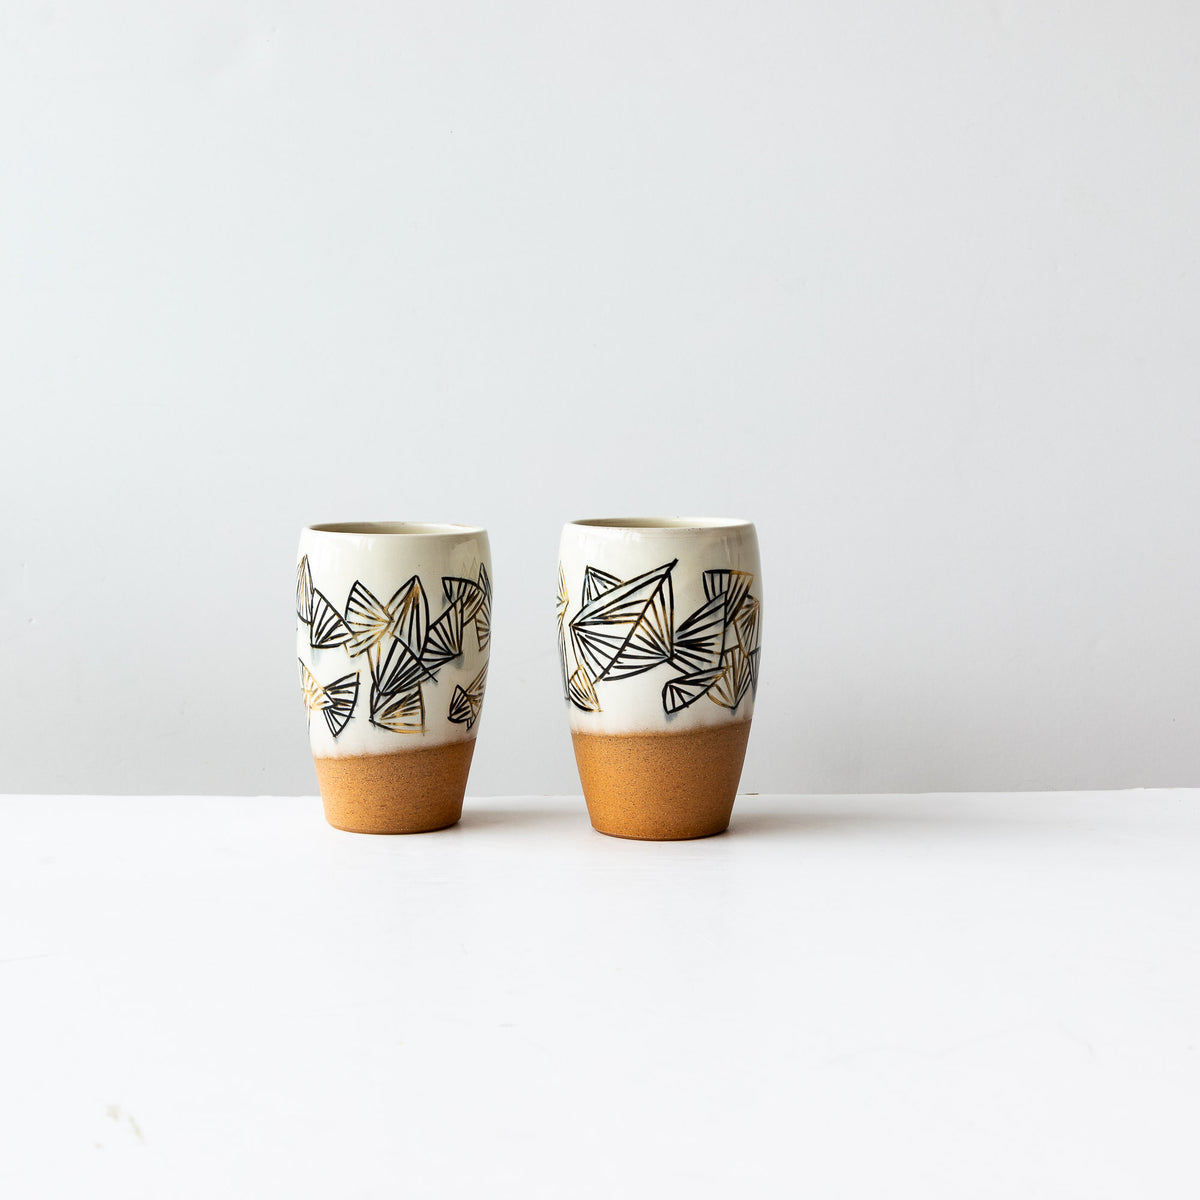 Two Handmade Mishima Stoneware Glassses With Black & Gold Folding Fan Pattern - Sold by Chic & Basta